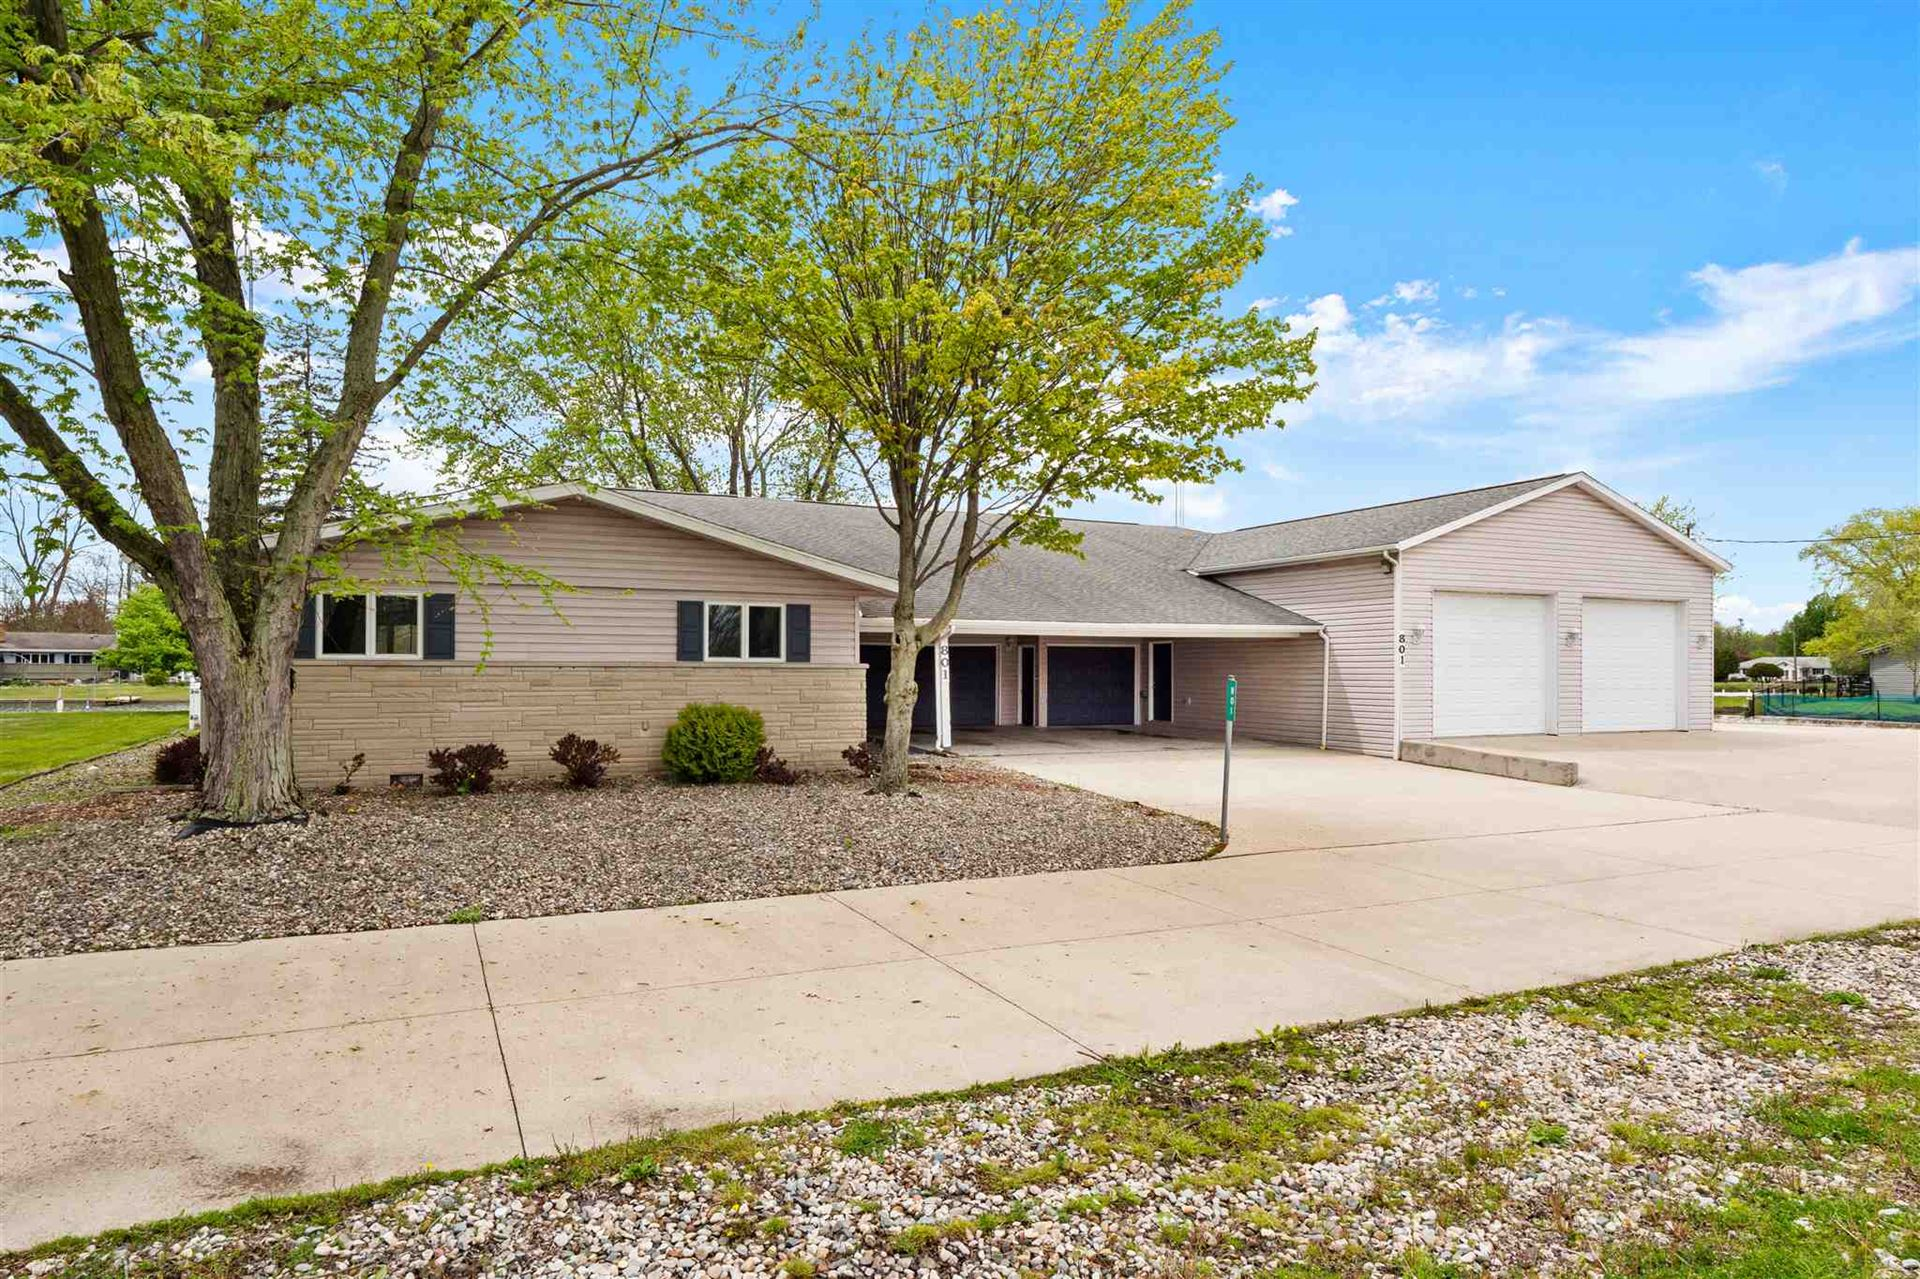 Photo of 801 S Harkless Drive, Syracuse, IN 46567 (MLS # 202017364)